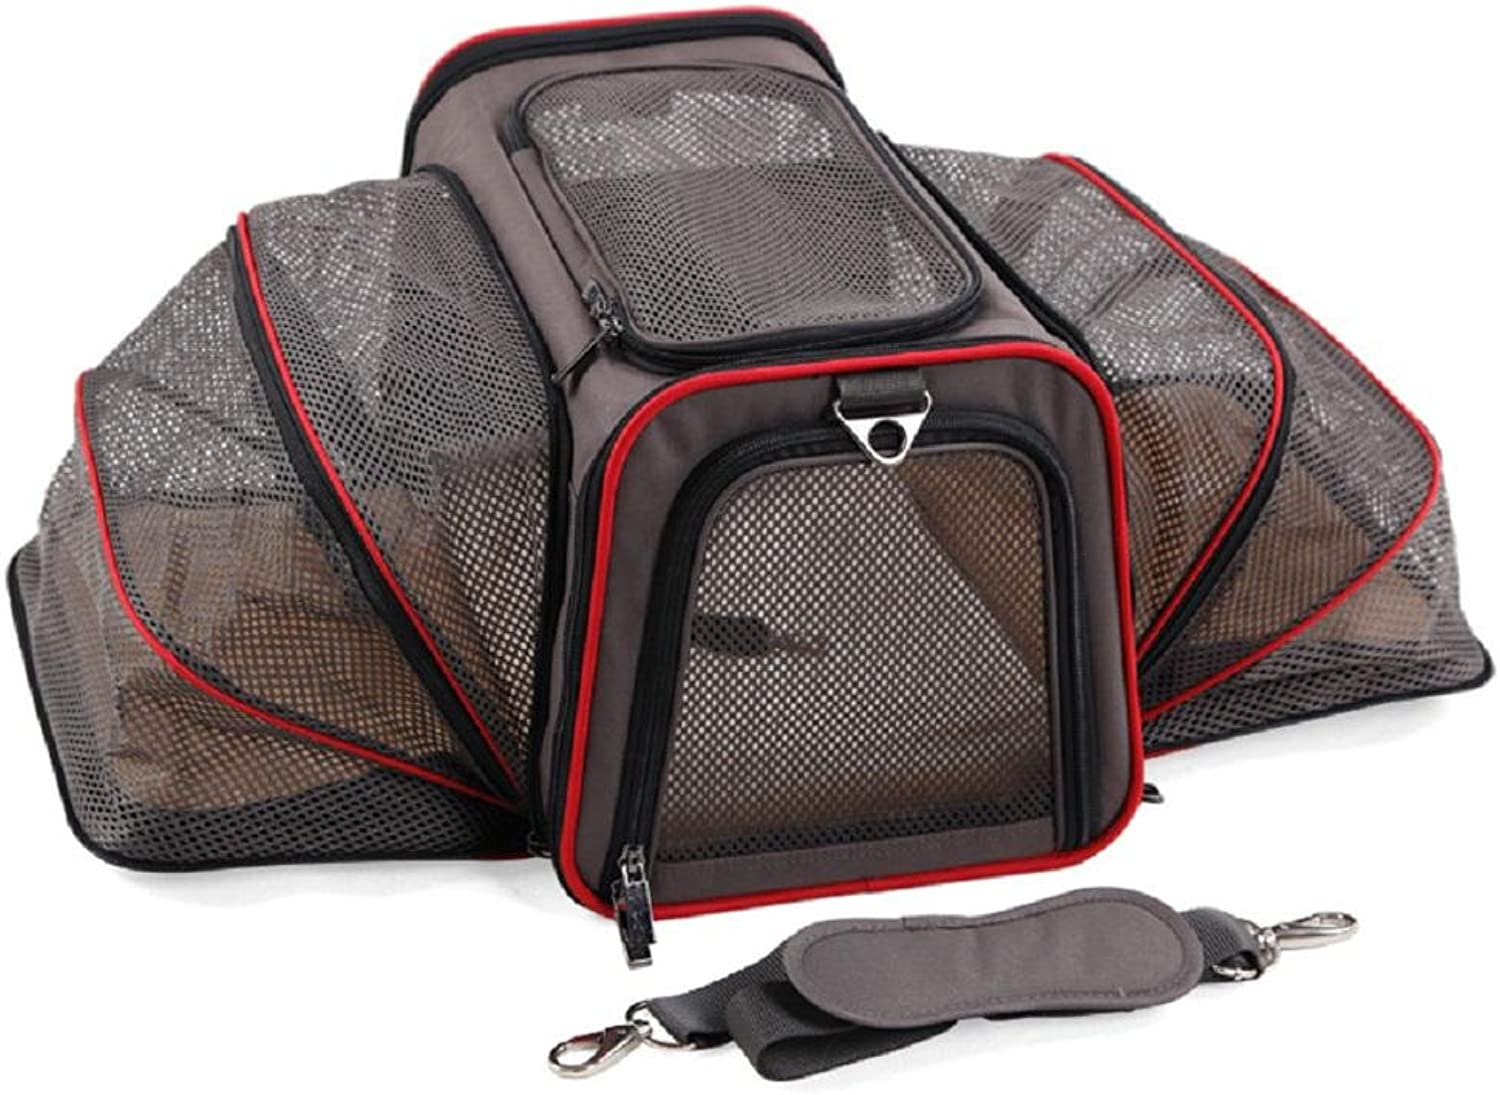 Expandable Dog Cat Travel Pet Carrier , Designed for Cats, Dogs, Kittens, Puppies  Extra Spacious, Comfortable, Soft Sided Travel Carrier